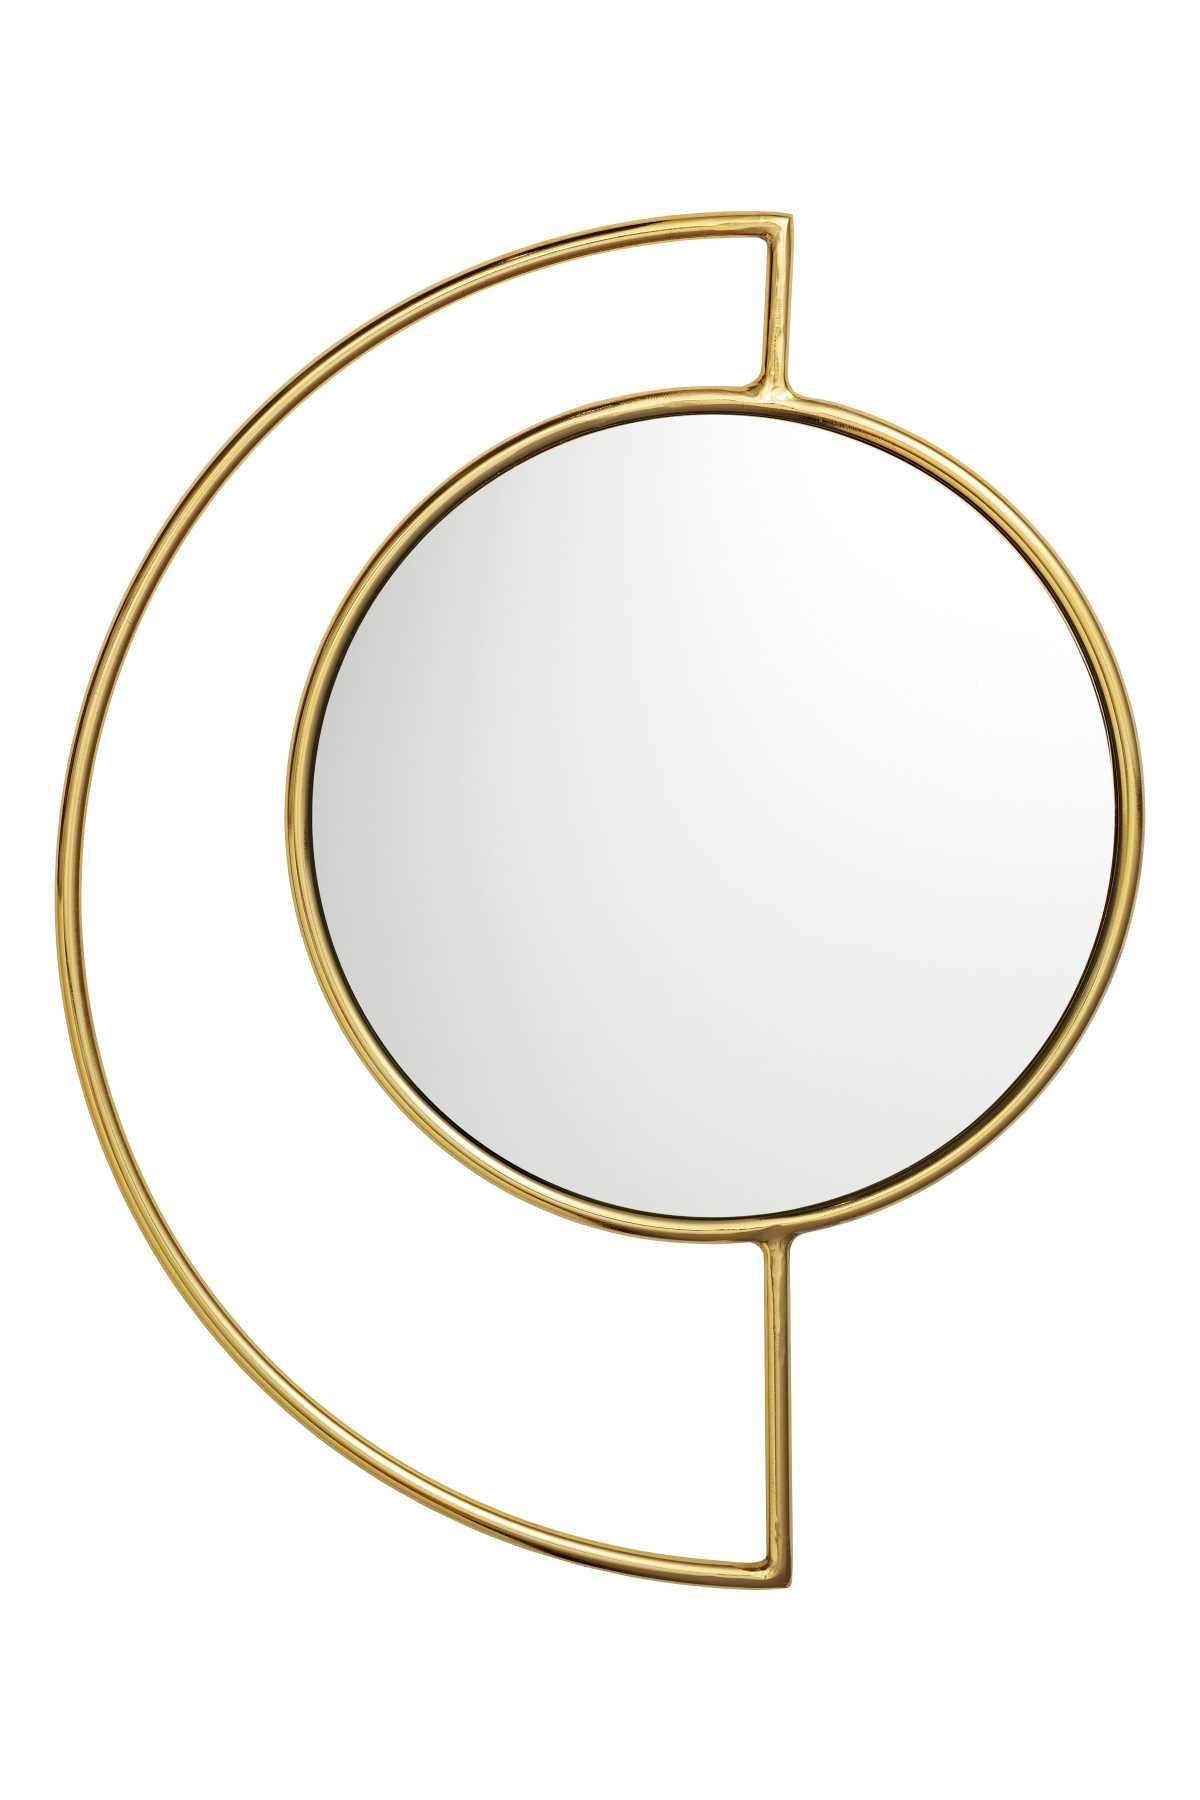 Gold Colored Round Mirror With A Metal Frame Diameter Of Mirror 15 1 4 In Size Of Frame 15 X 19 1 4 I Round Mirrors Mirror Designs Home Interior Accessories